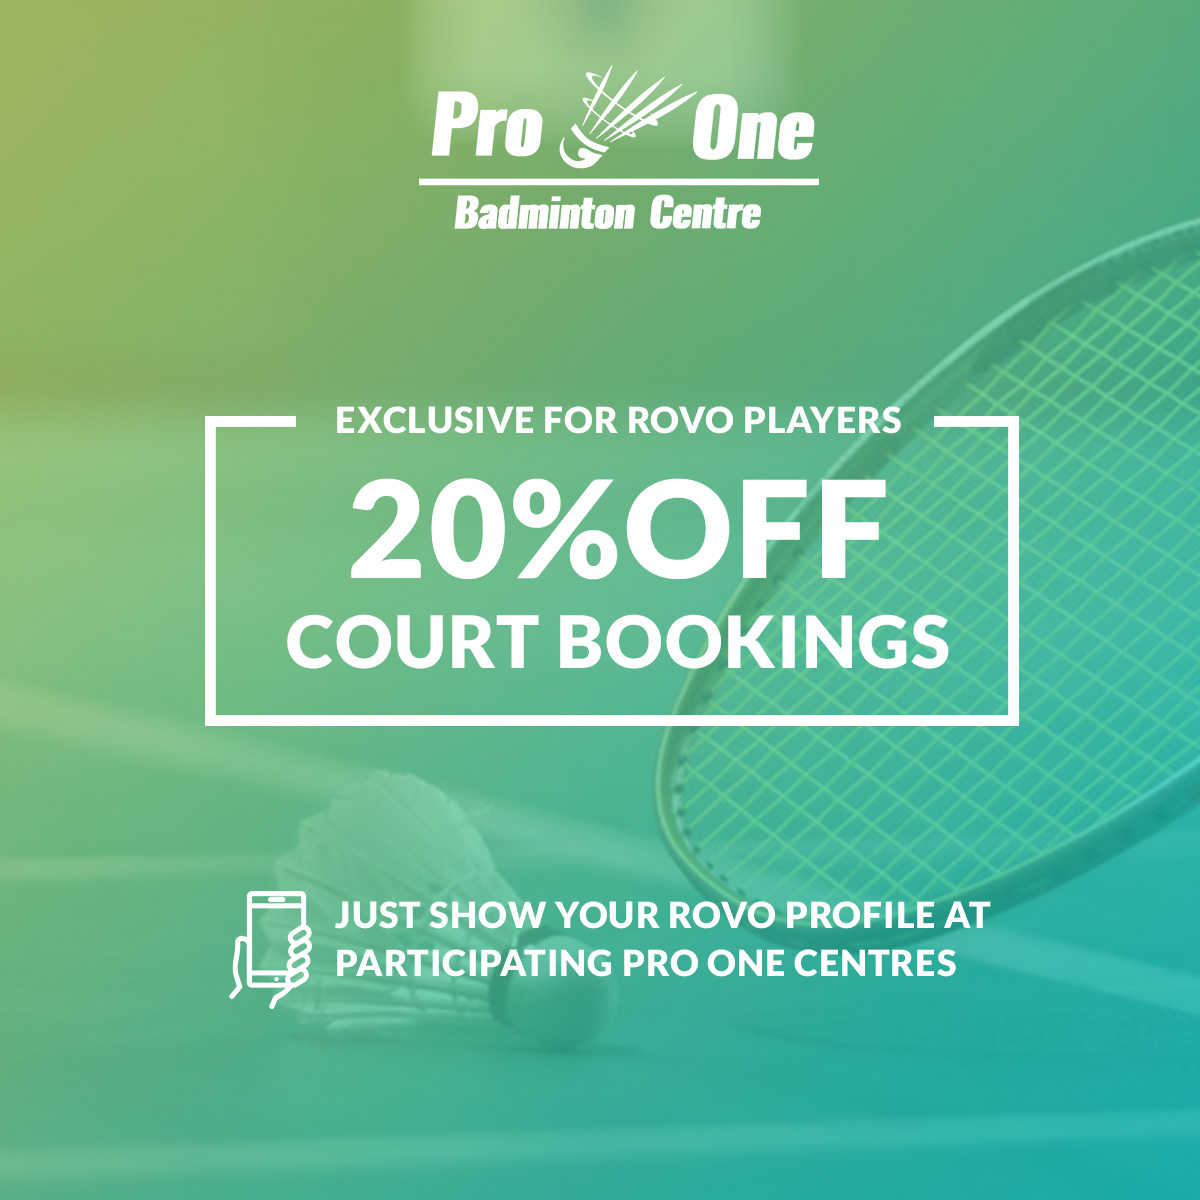 ProOneBadminton-Discount-Rovo